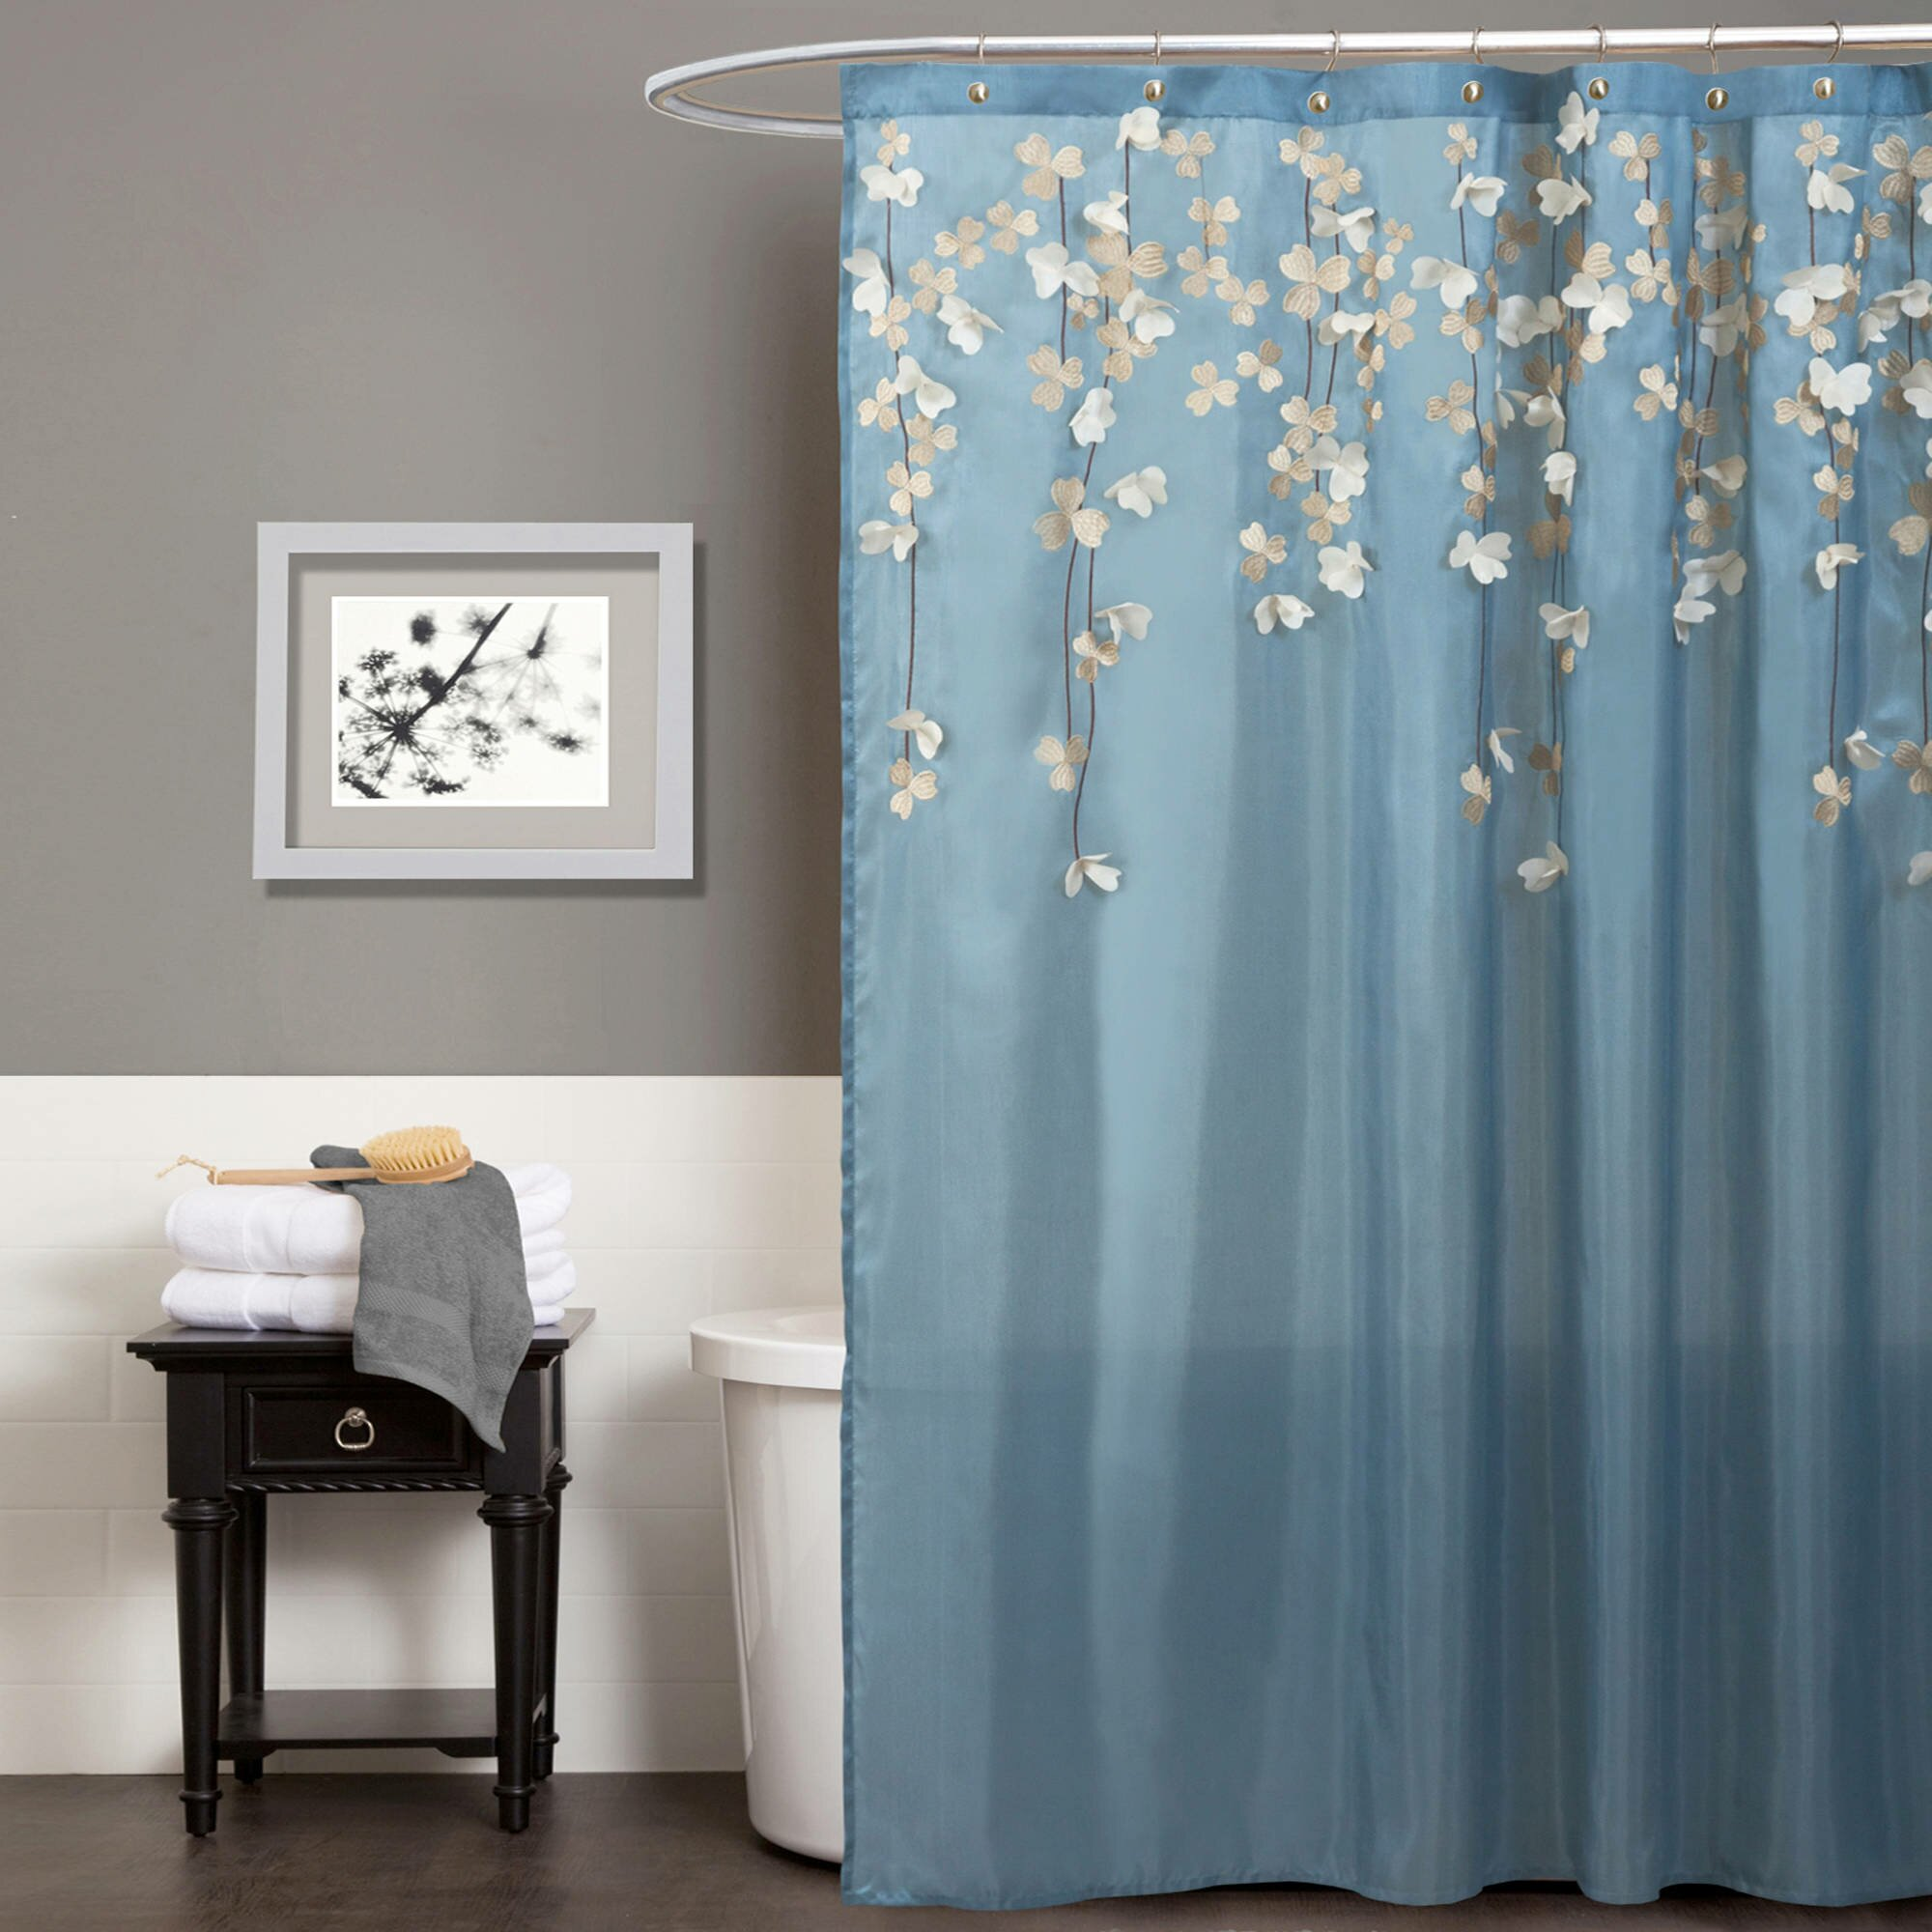 Curtain walmart shower curtain wal mart shower curtains discount fabric shower curtains Bathroom decor ideas with shower curtain